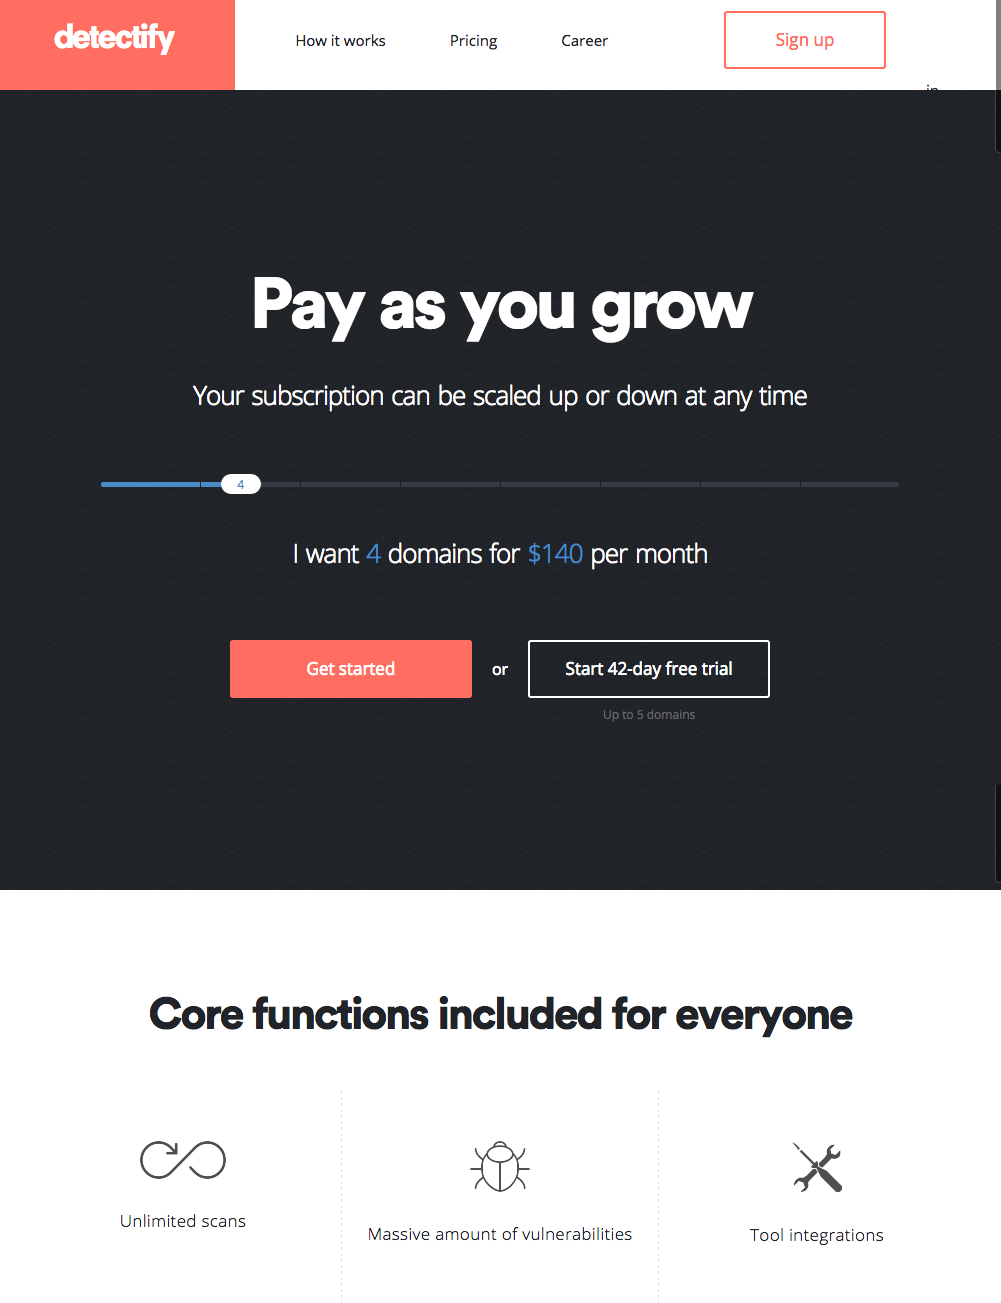 detectify-pricing-page.png